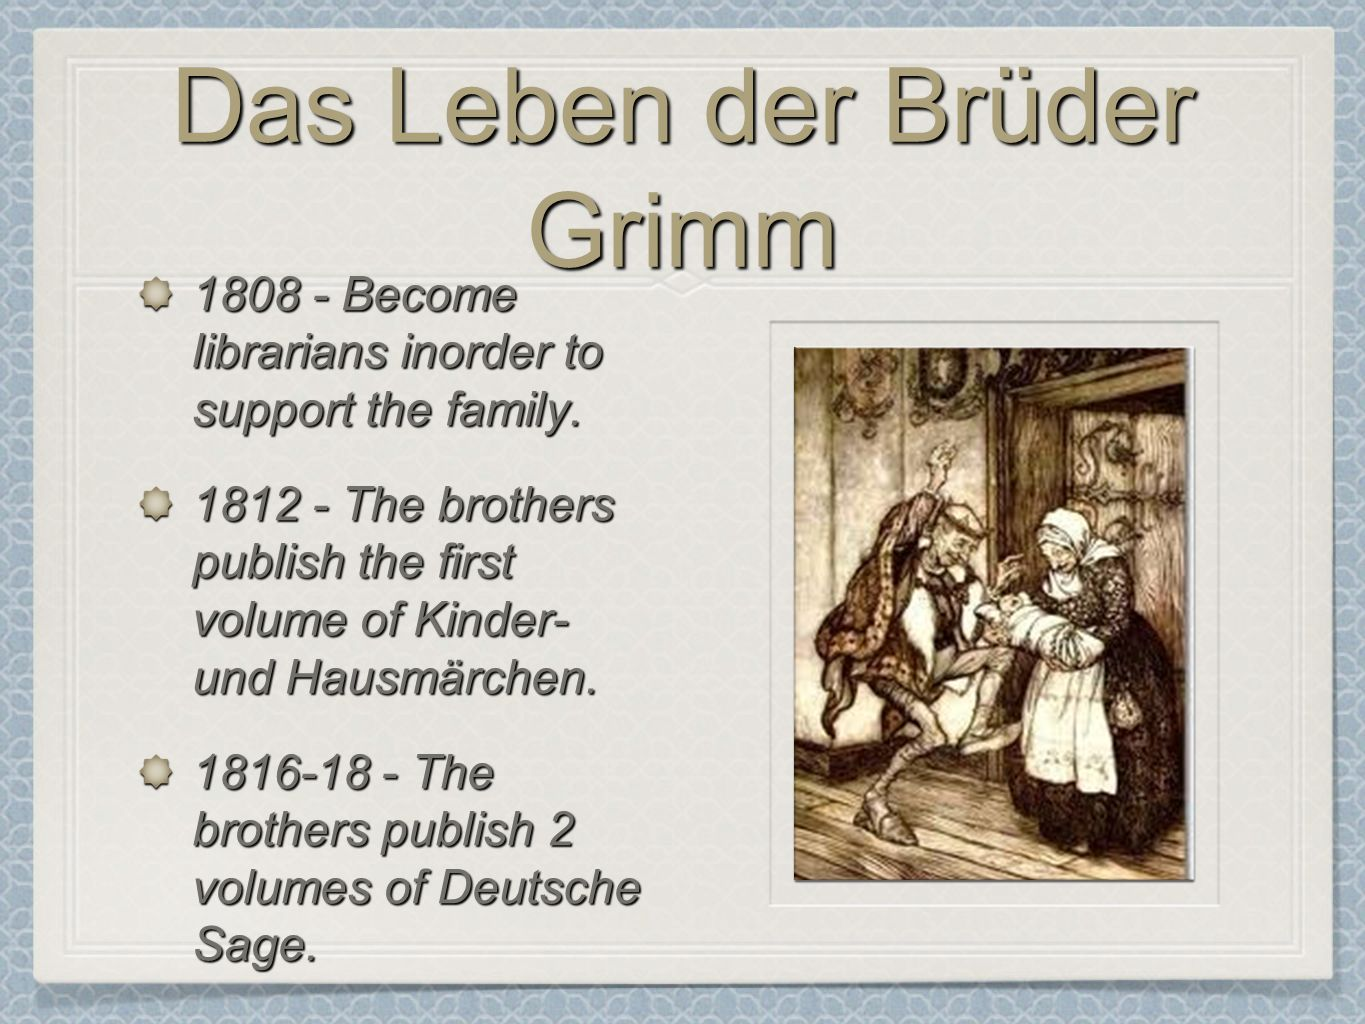 Das Leben der Brüder Grimm 1808 - Become librarians inorder to support the family. 1812 - The brothers publish the first volume of Kinder- und Hausmär